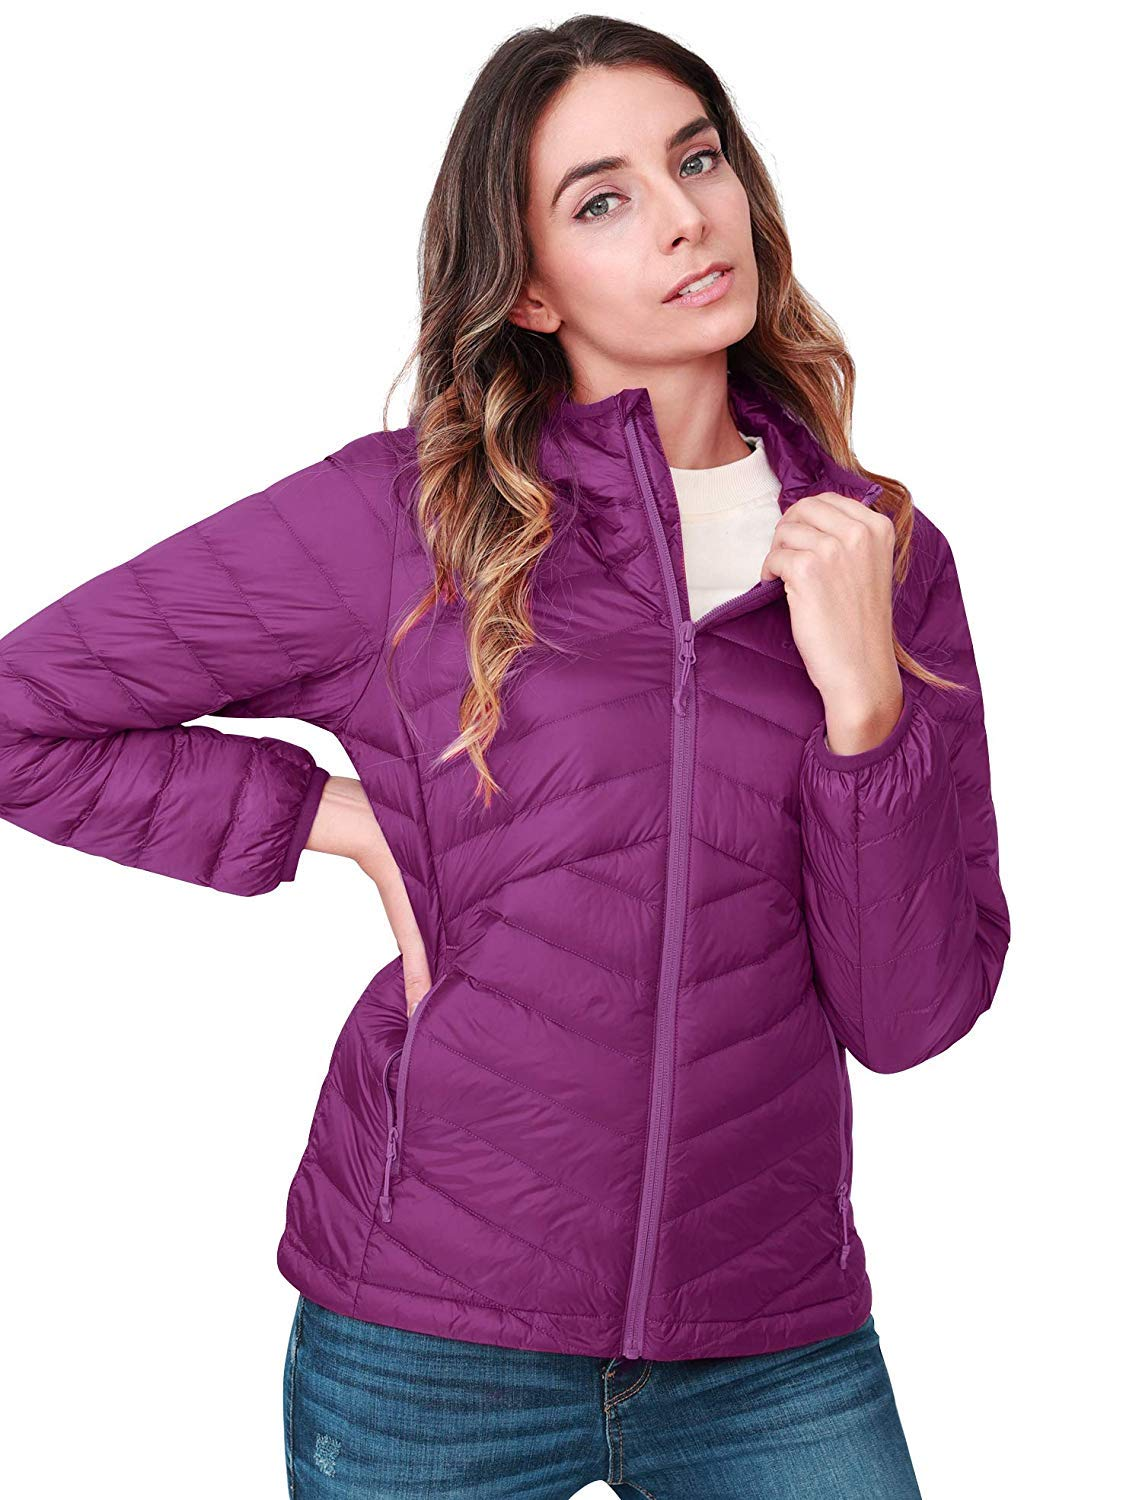 CAMEL CROWN Womens Down Jacket Lightweight Packable Hooded Windproof Winter Warm Quilted Coat Full-Zip Insulated Coat with Pocket for Leisure Sports Travel Outdoor Black Purple